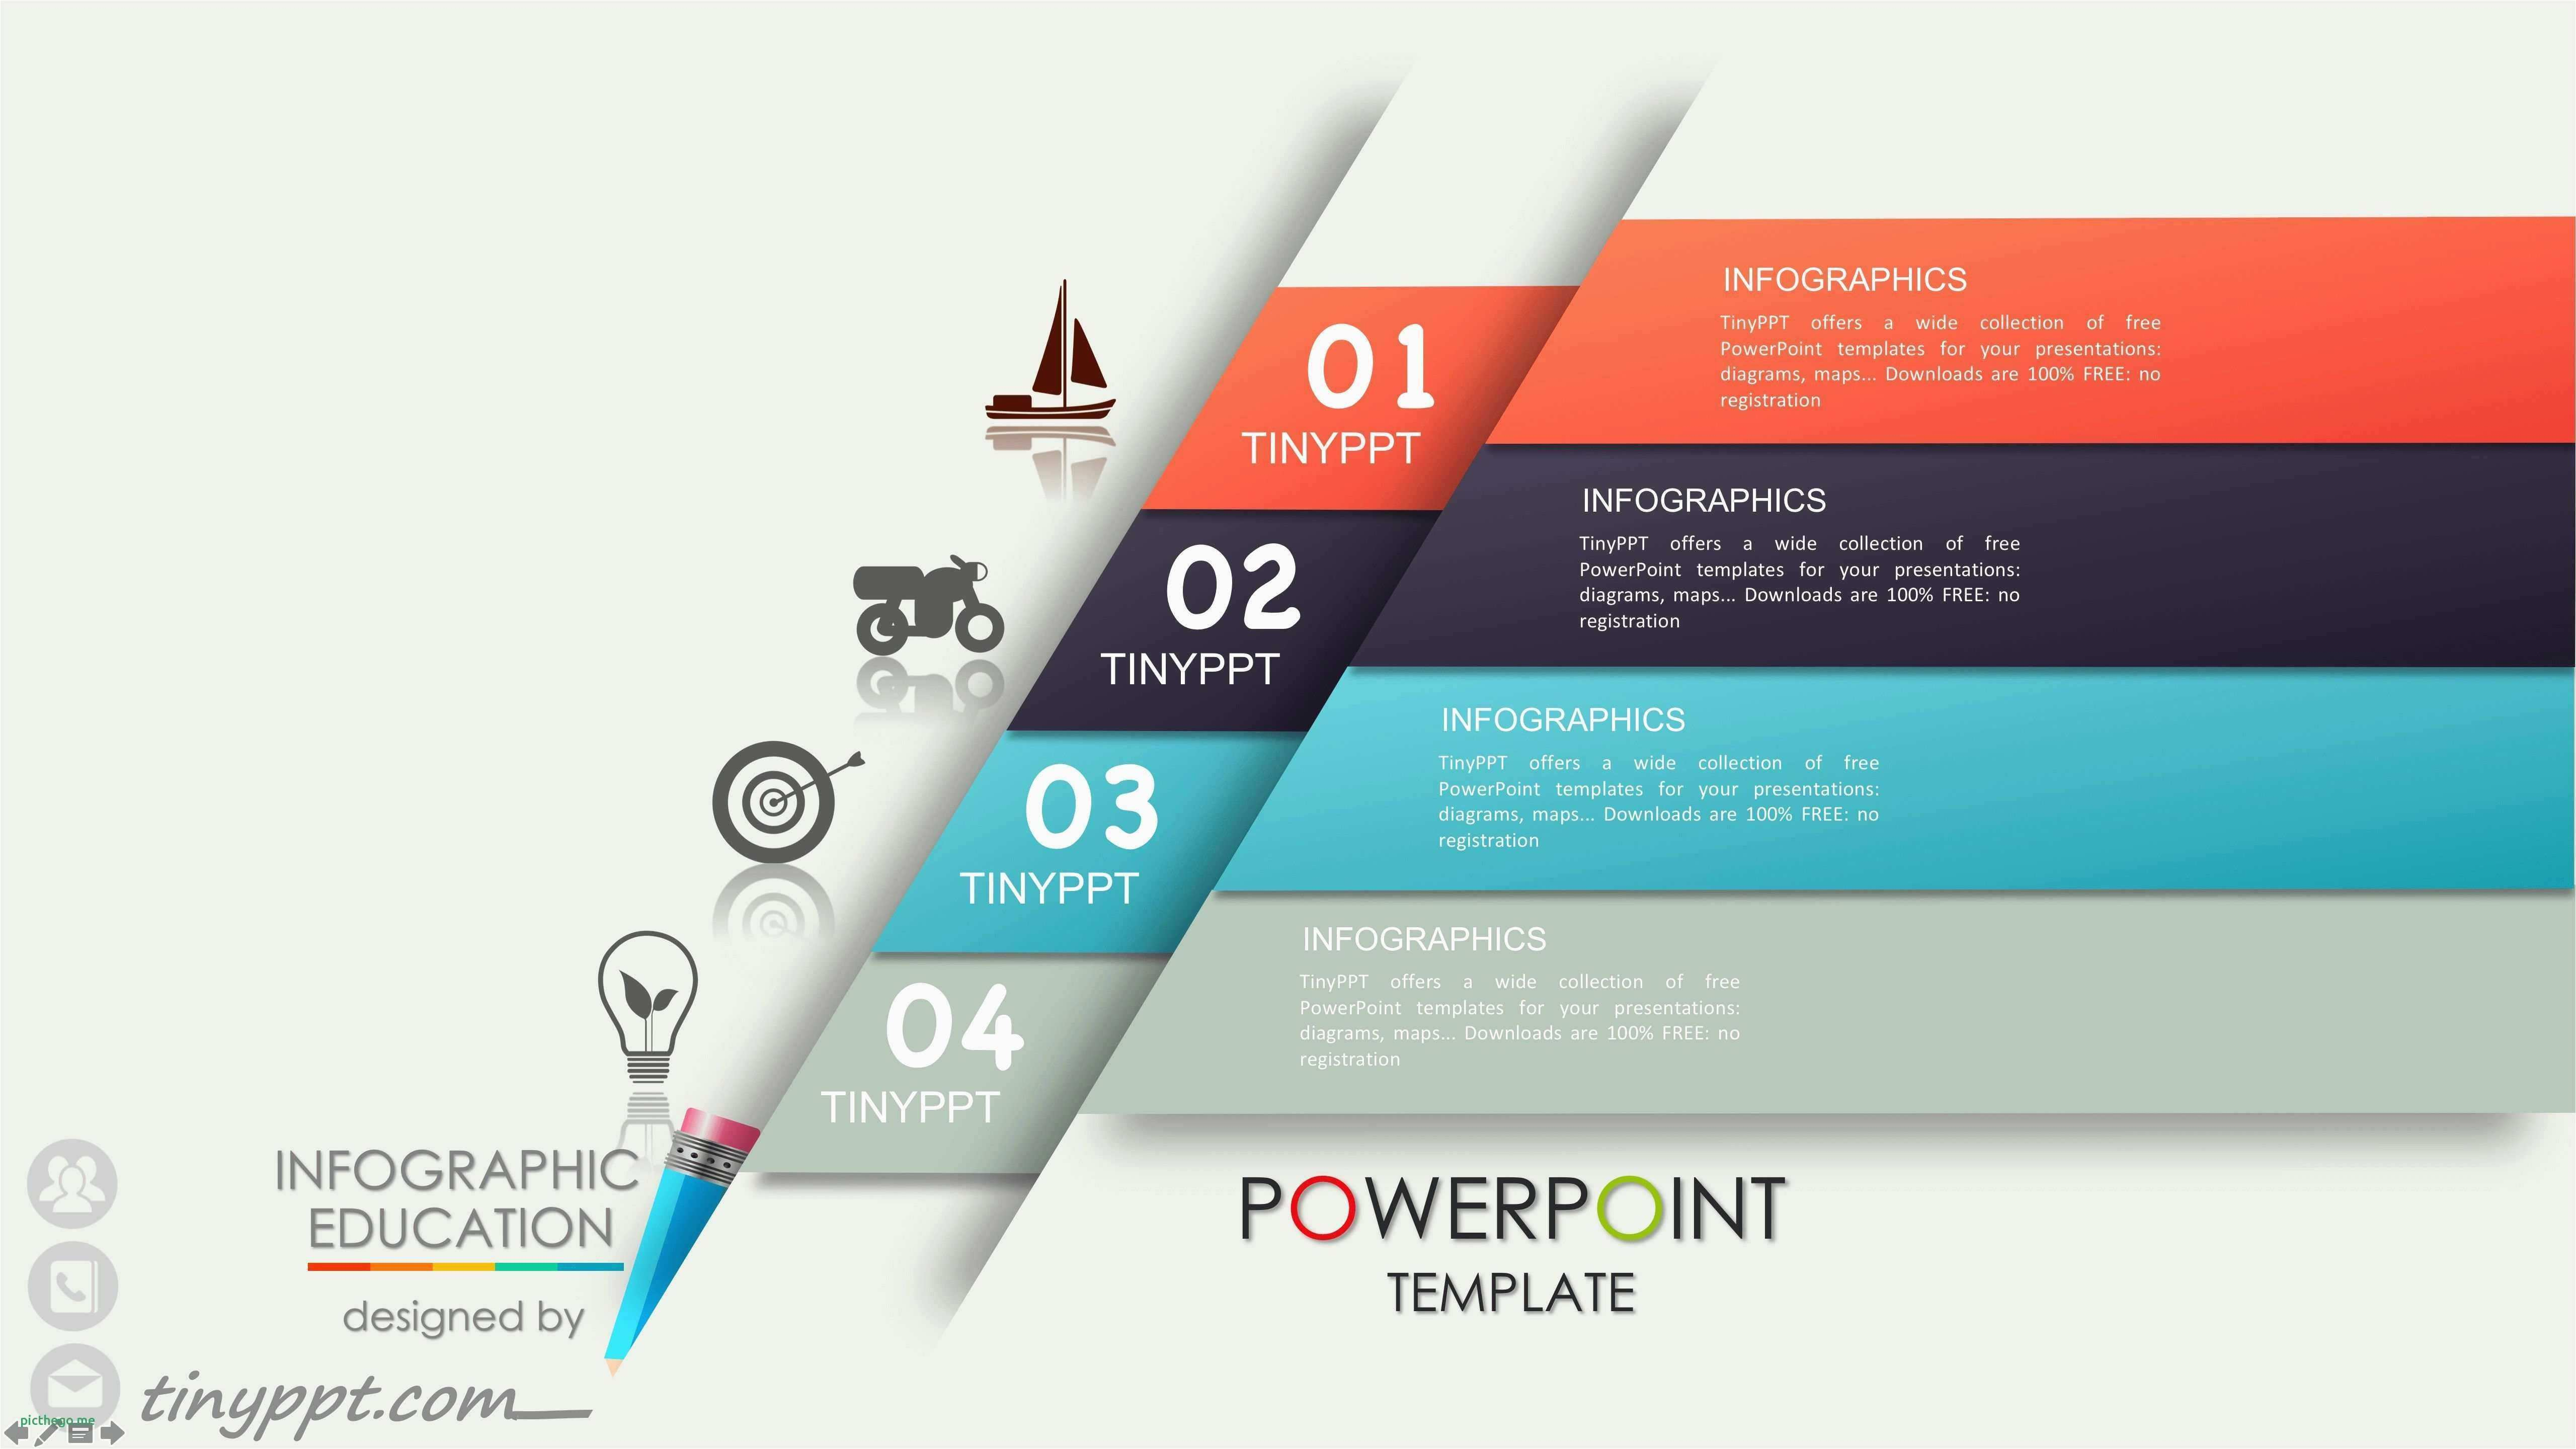 Download New Business Presentation Powerpoint Templates Can Save At New Business Presentation Powerpoint Templates Powerpoint Vorlagen Power Points Power Point